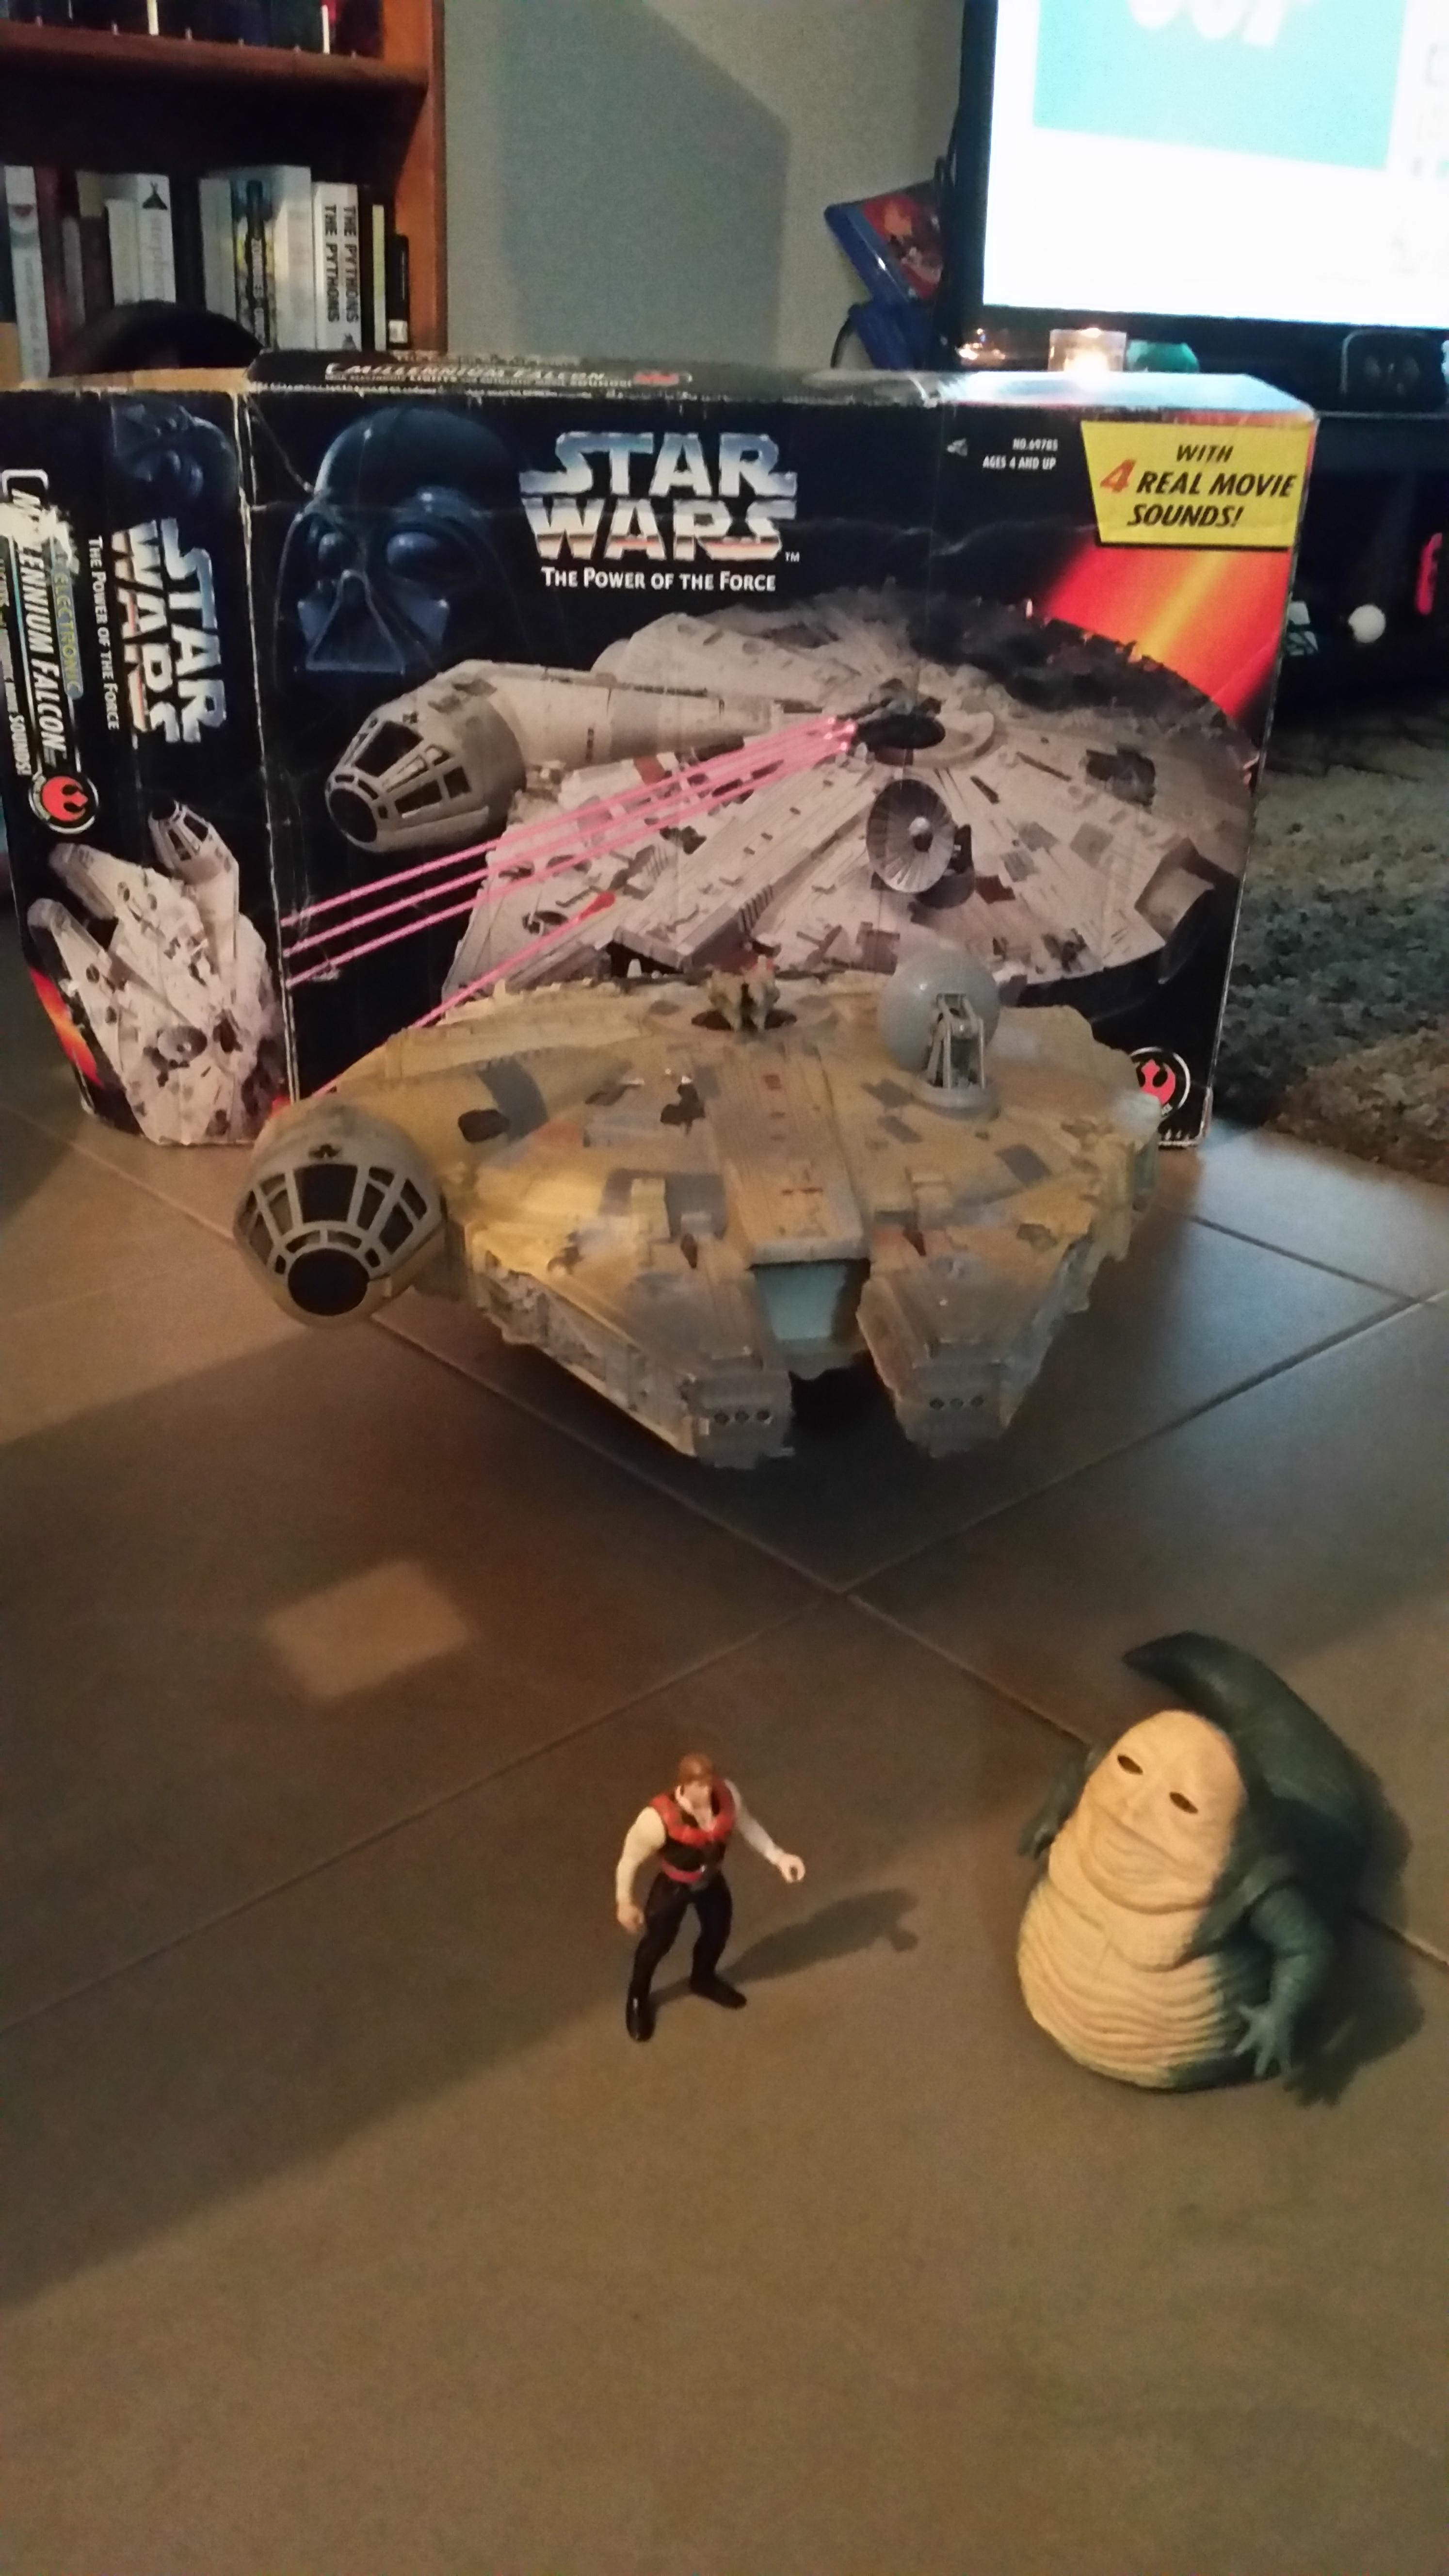 I have been returned my original Millennium Falcon toy in time for my own child.